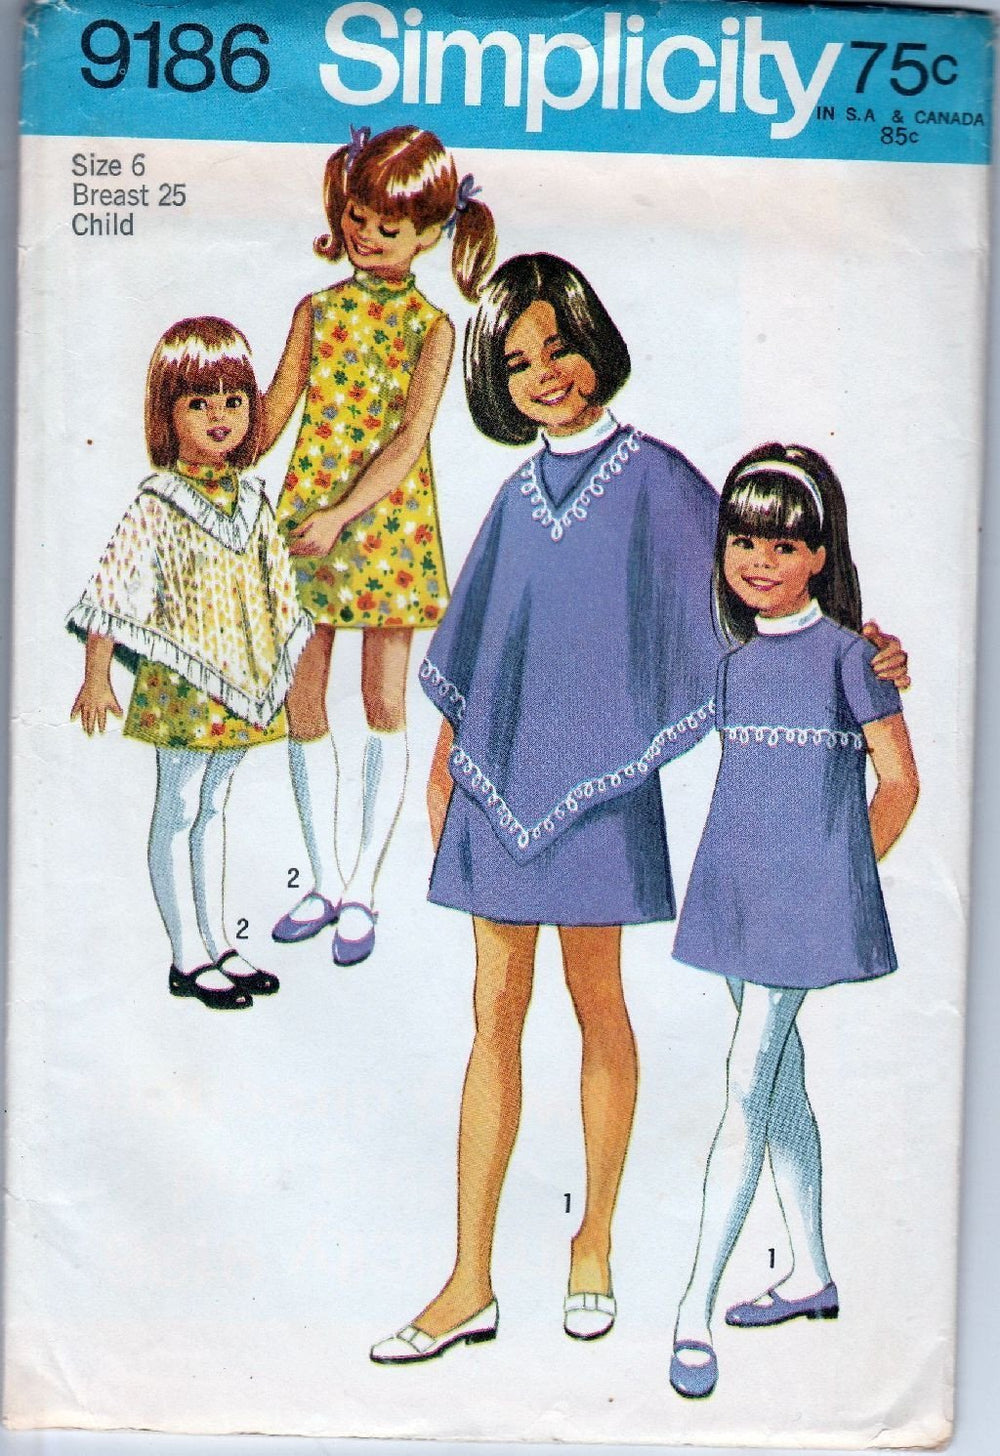 Simplicity 9186 Vintage 1960's Sewing Pattern Girls Dress Poncho - VintageStitching - Vintage Sewing Patterns